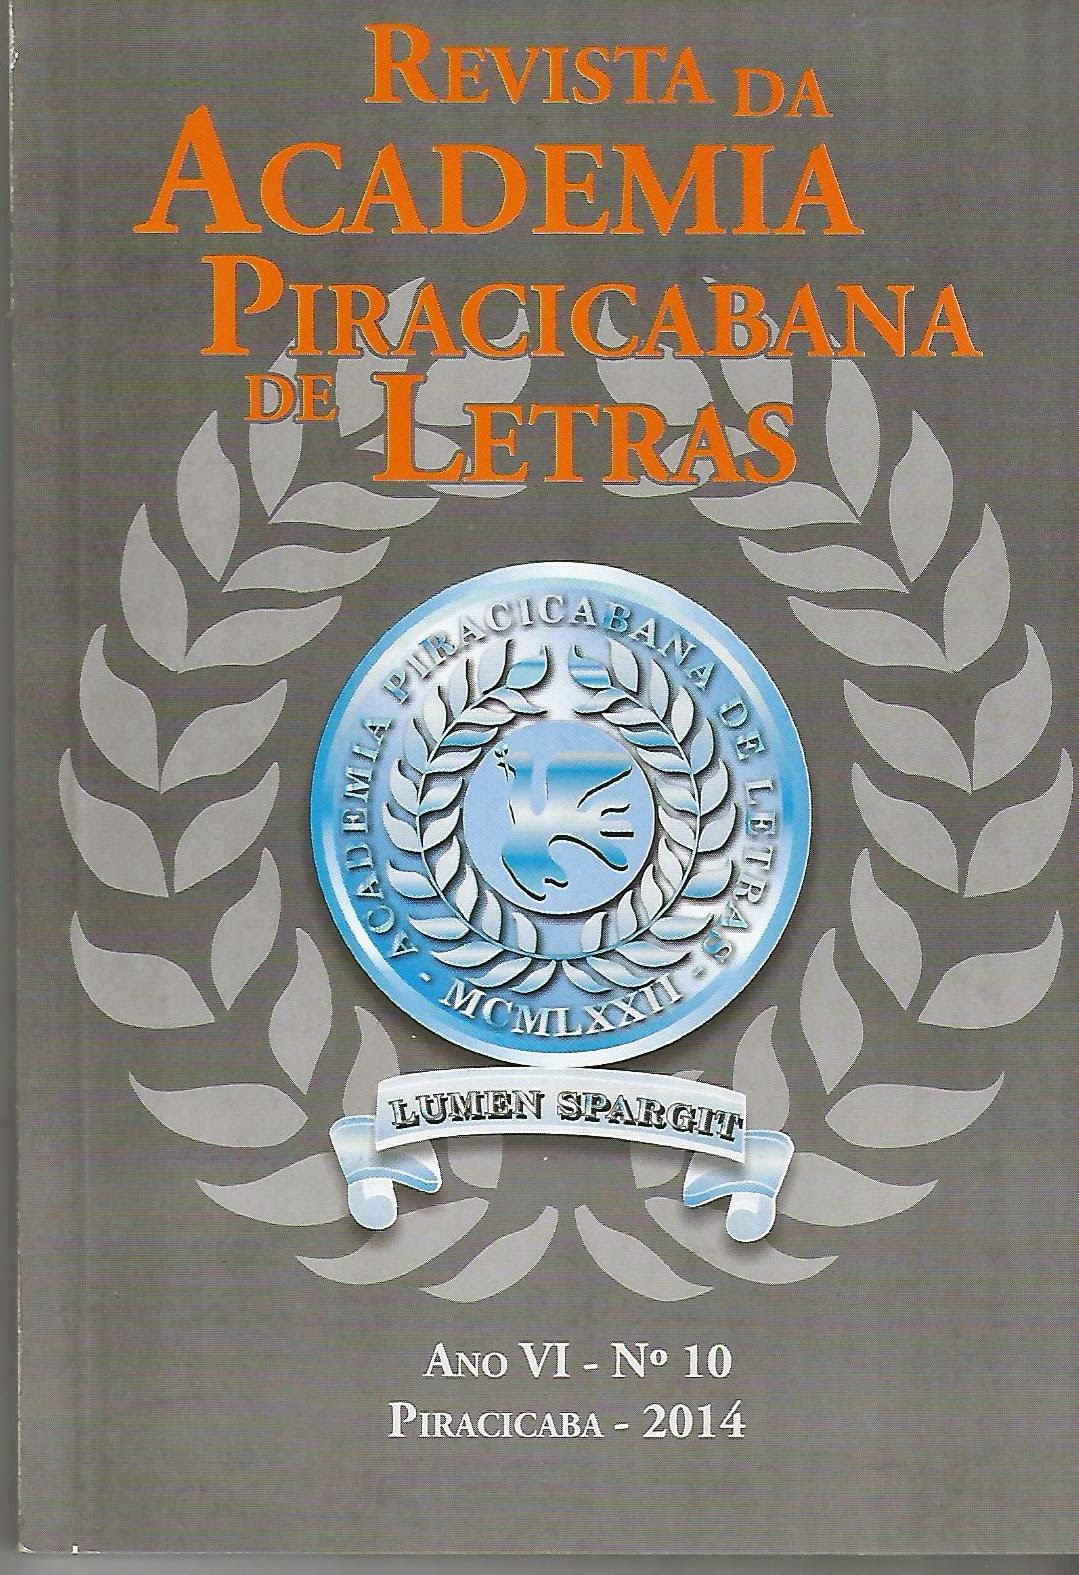 Revista da Academia Piracicabana de Letras - vol 10